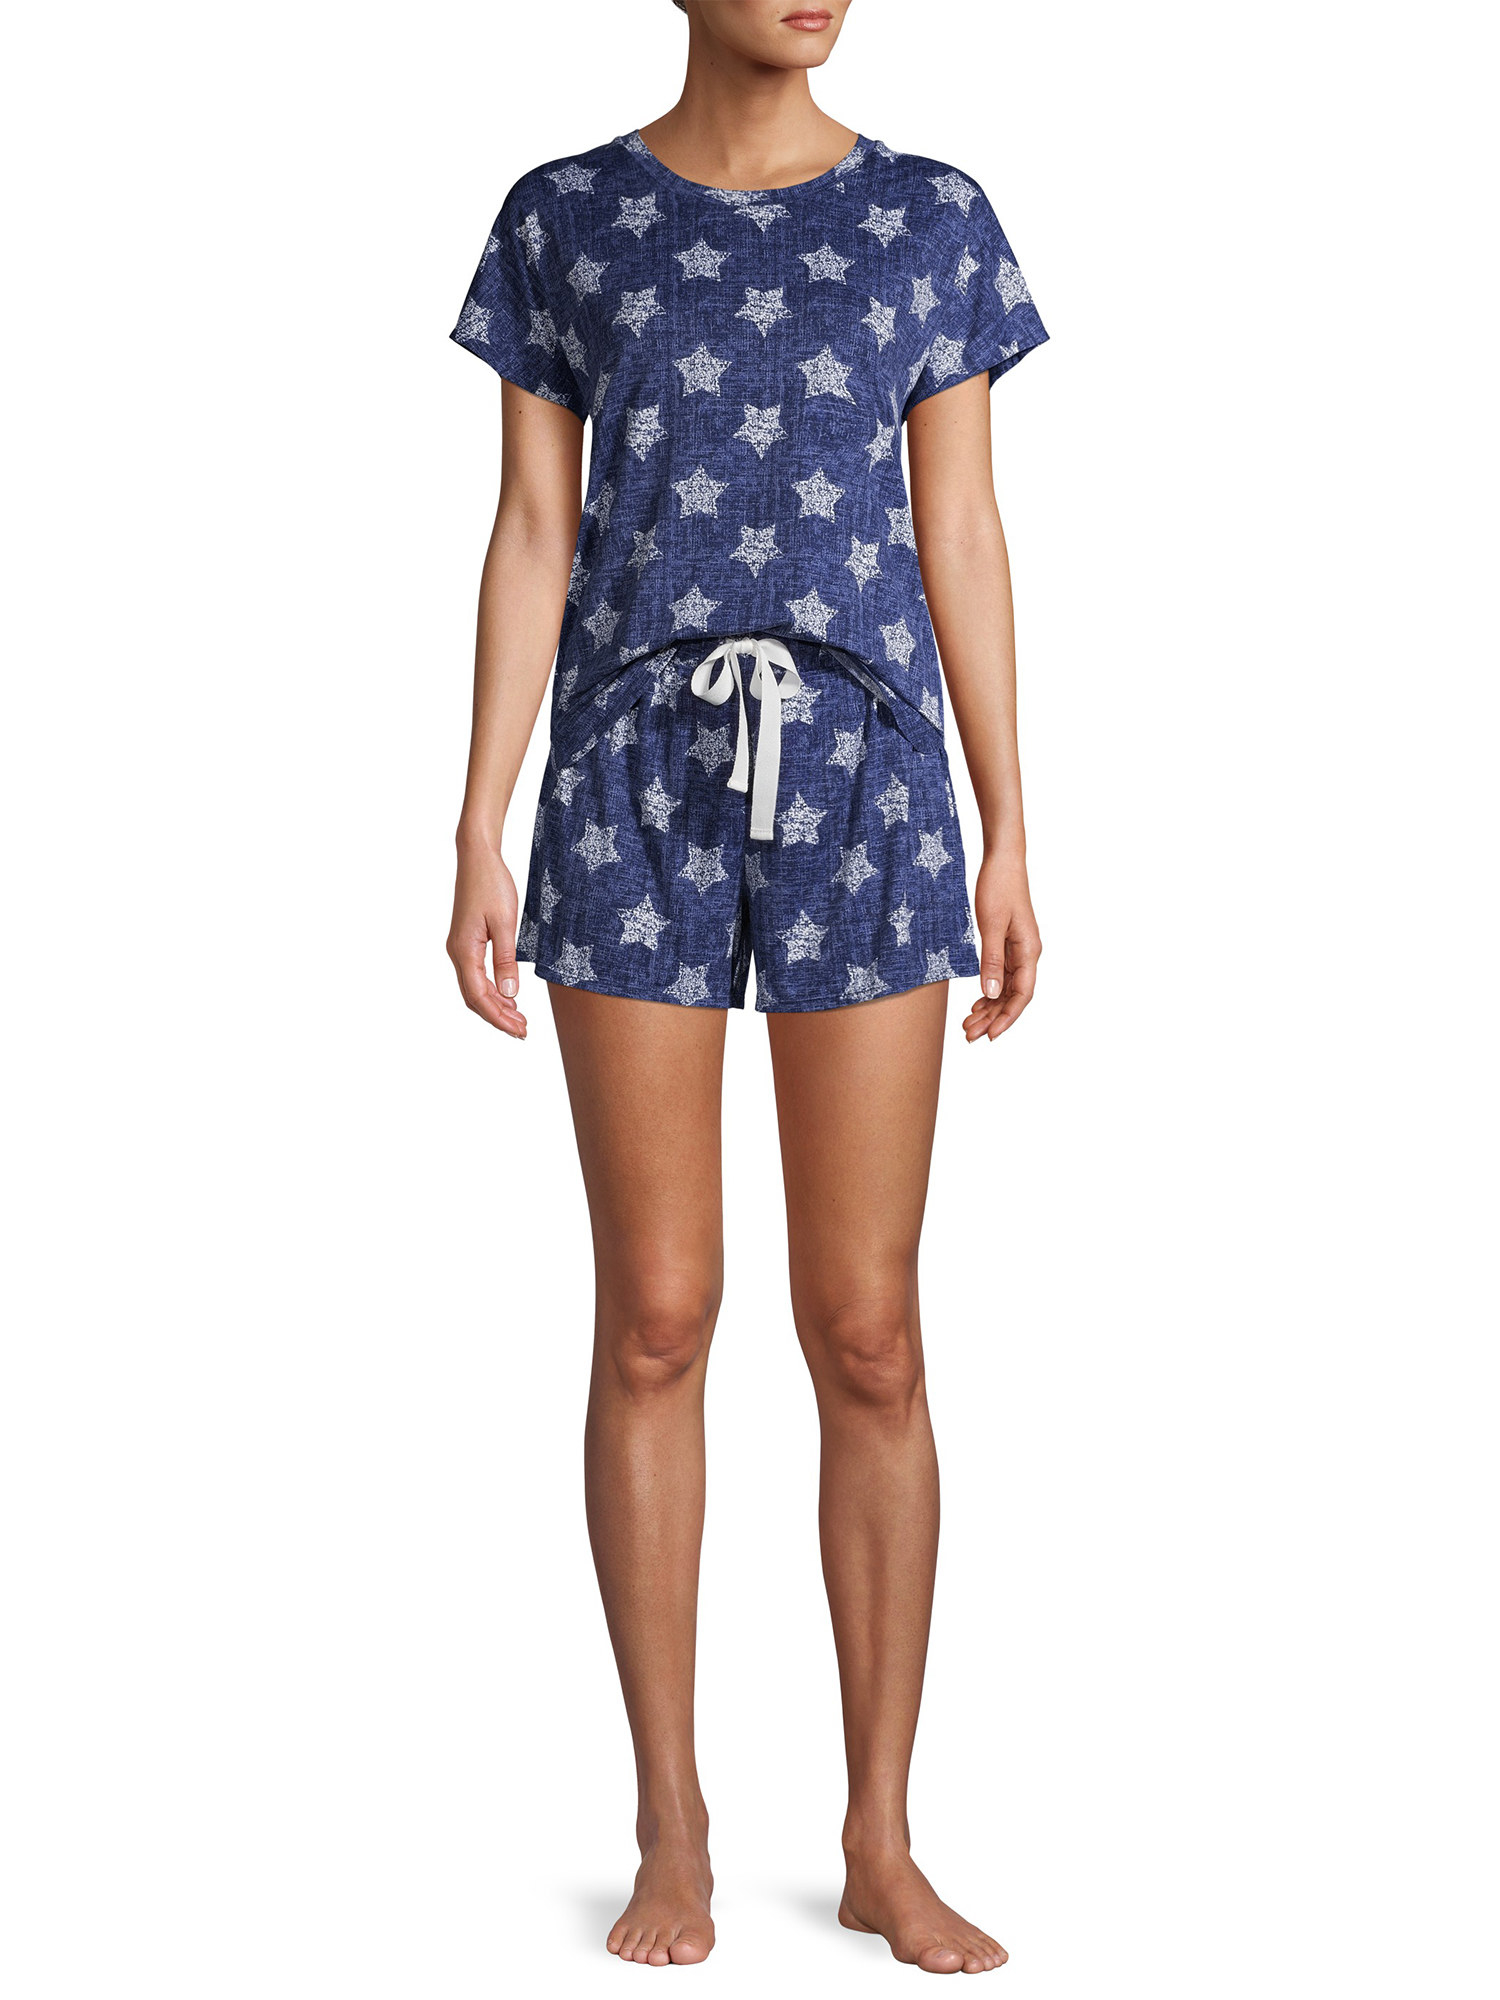 a model in the pajama set which is blue and covered in white stars